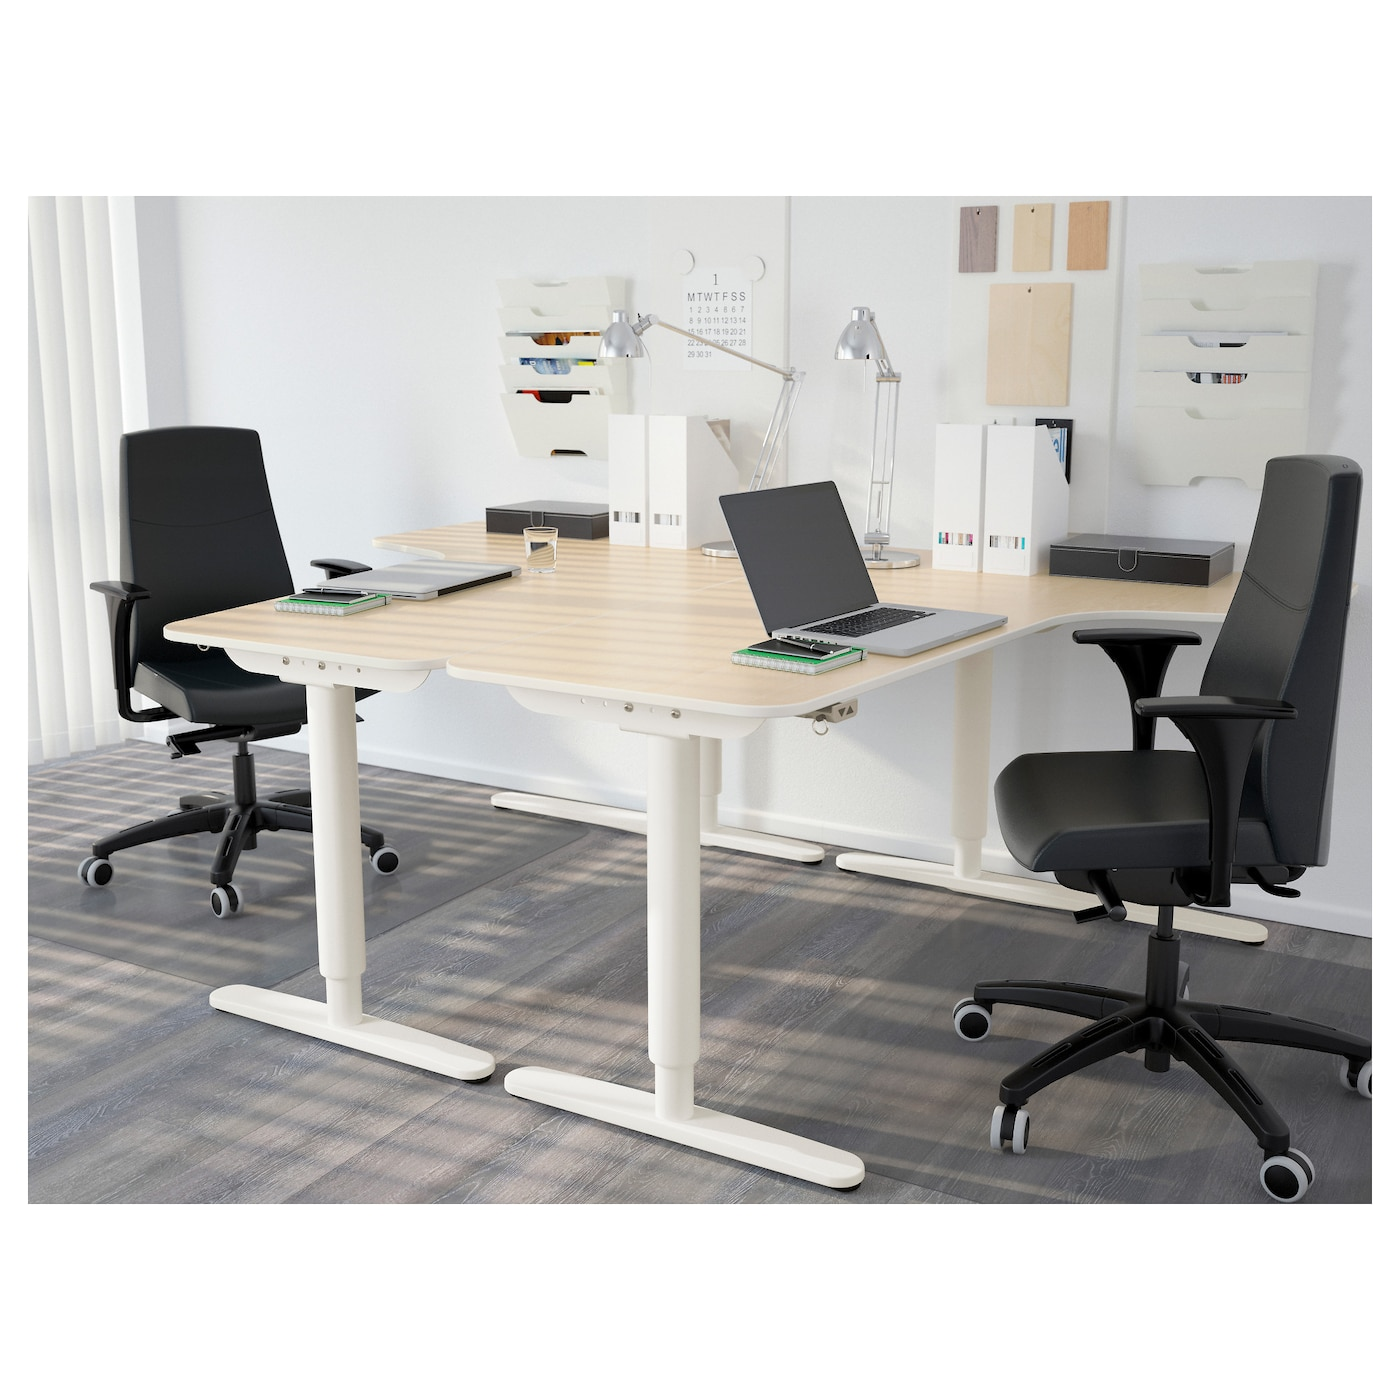 corner desk right sit stand birch veneer white 160x110 cm ikea